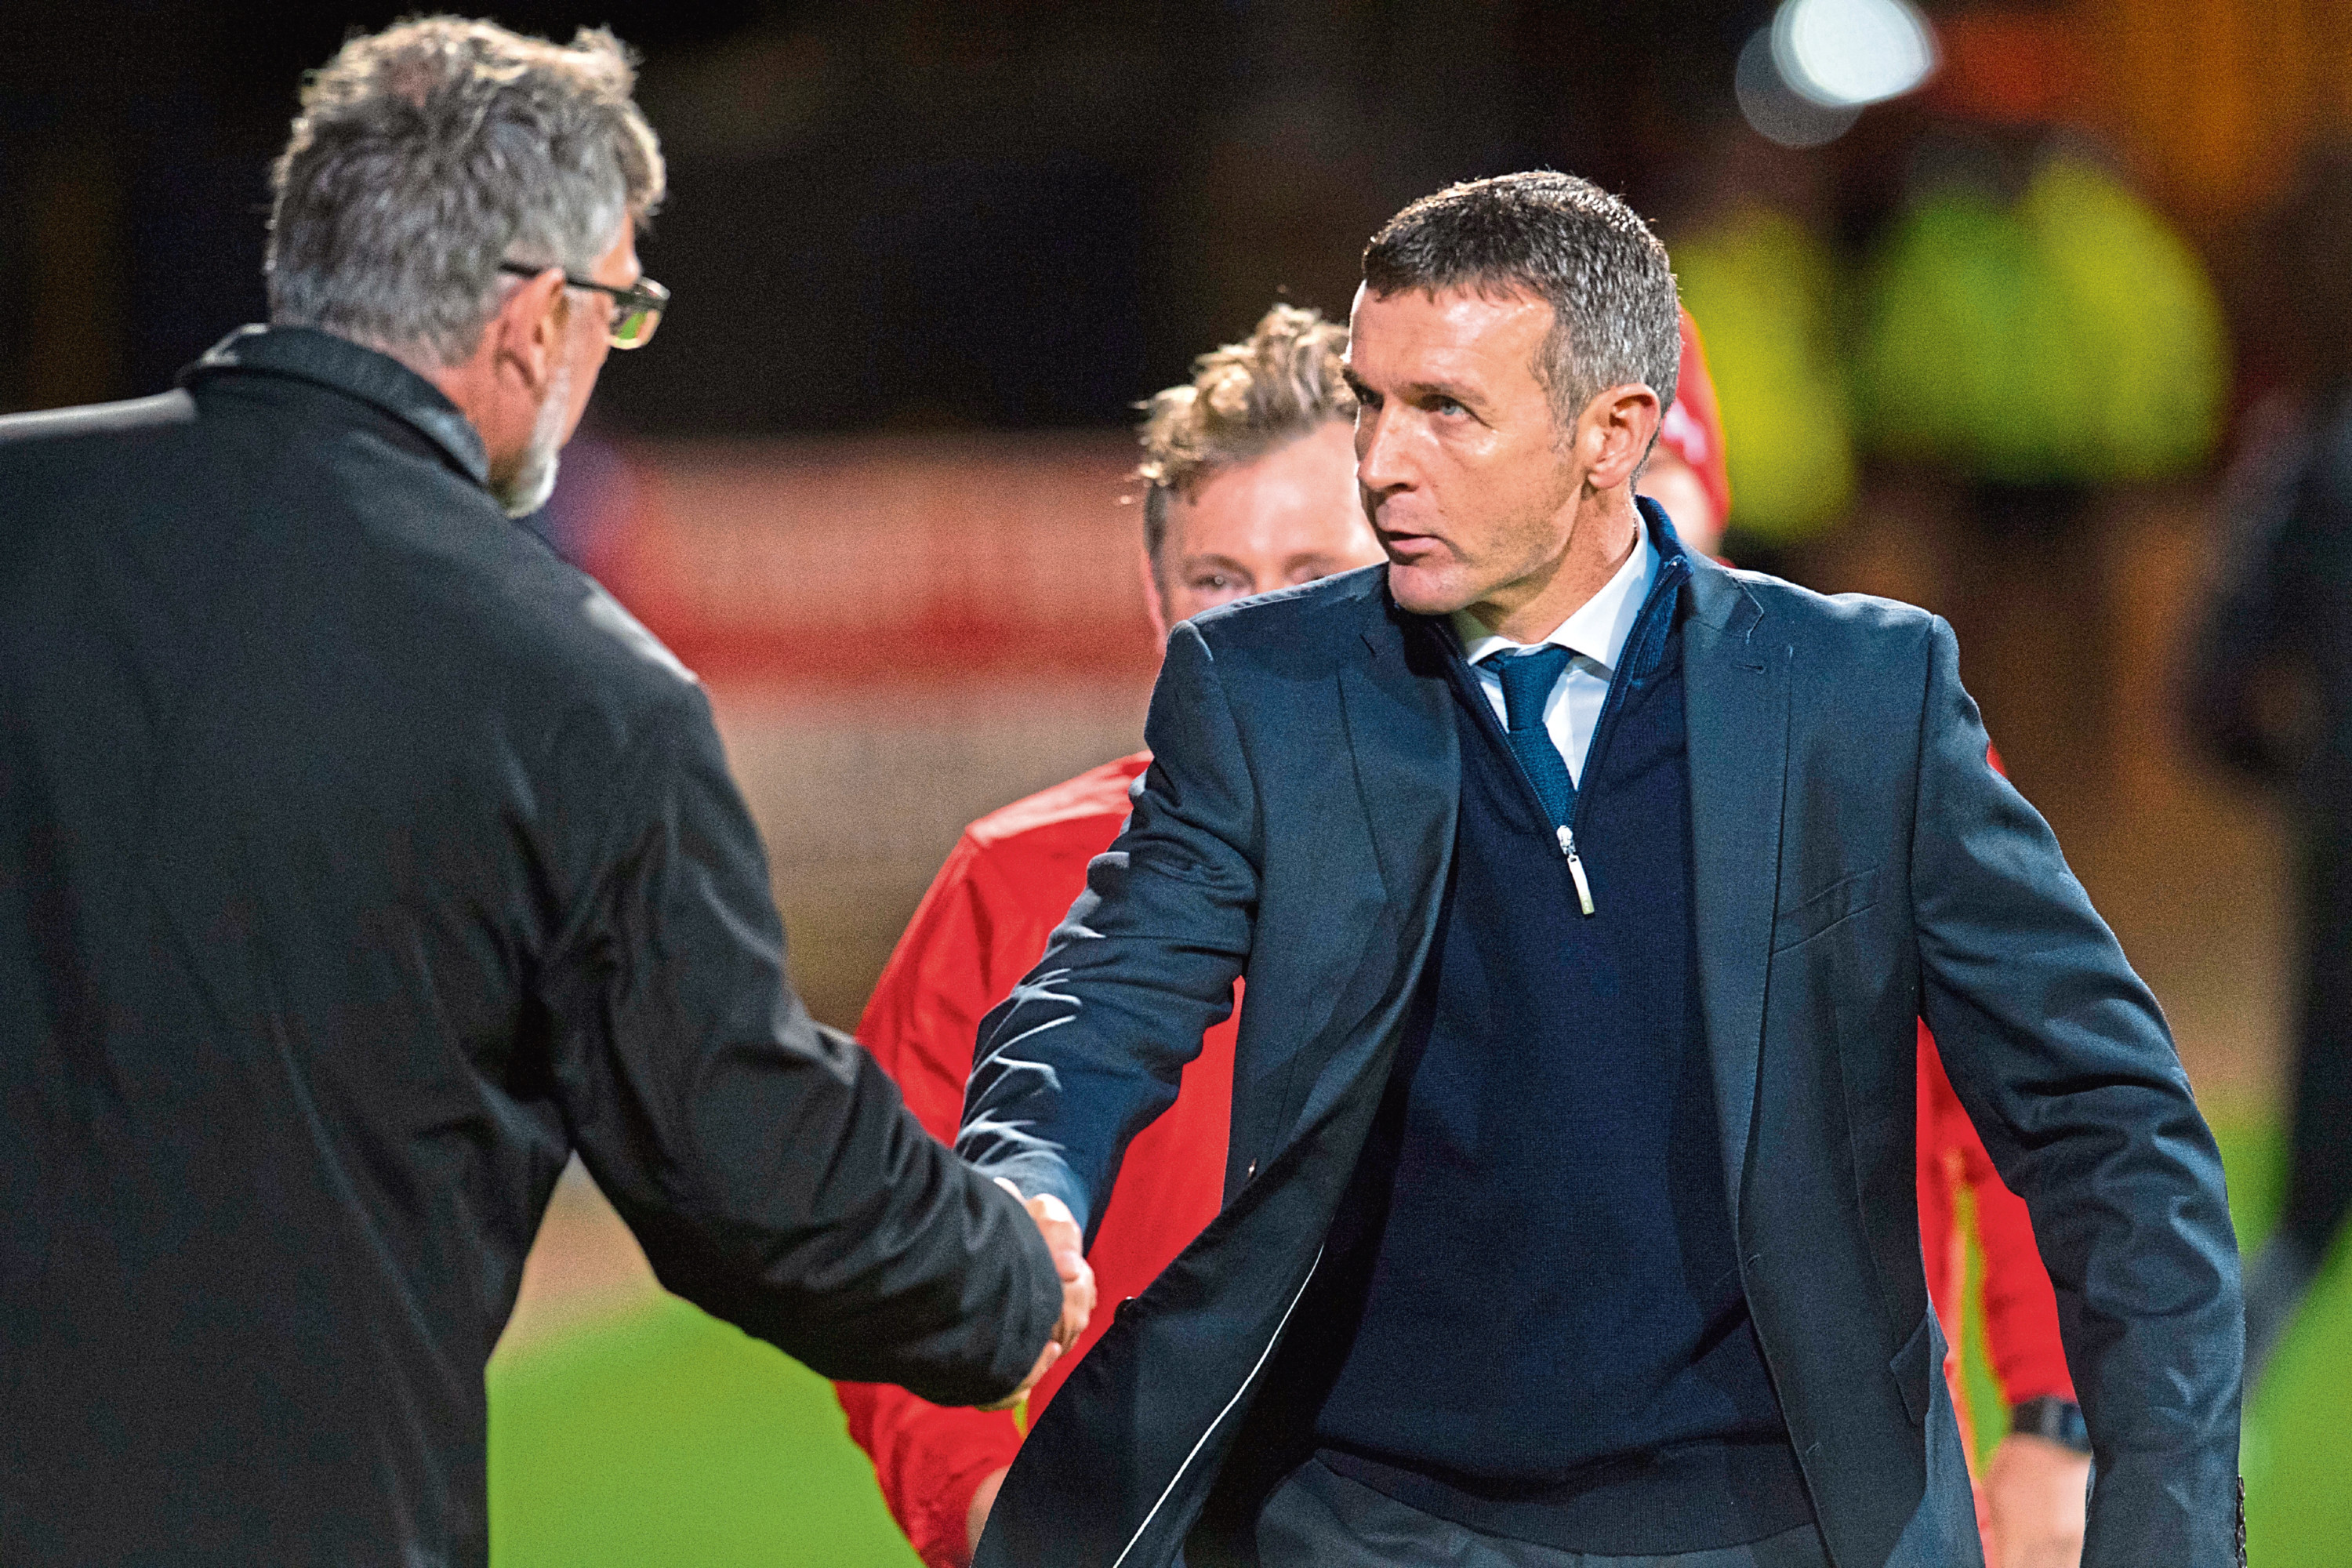 Dundee gaffer Jim McIntyre (right) faces the biggest test of his managerial career in turning Dundee's season around